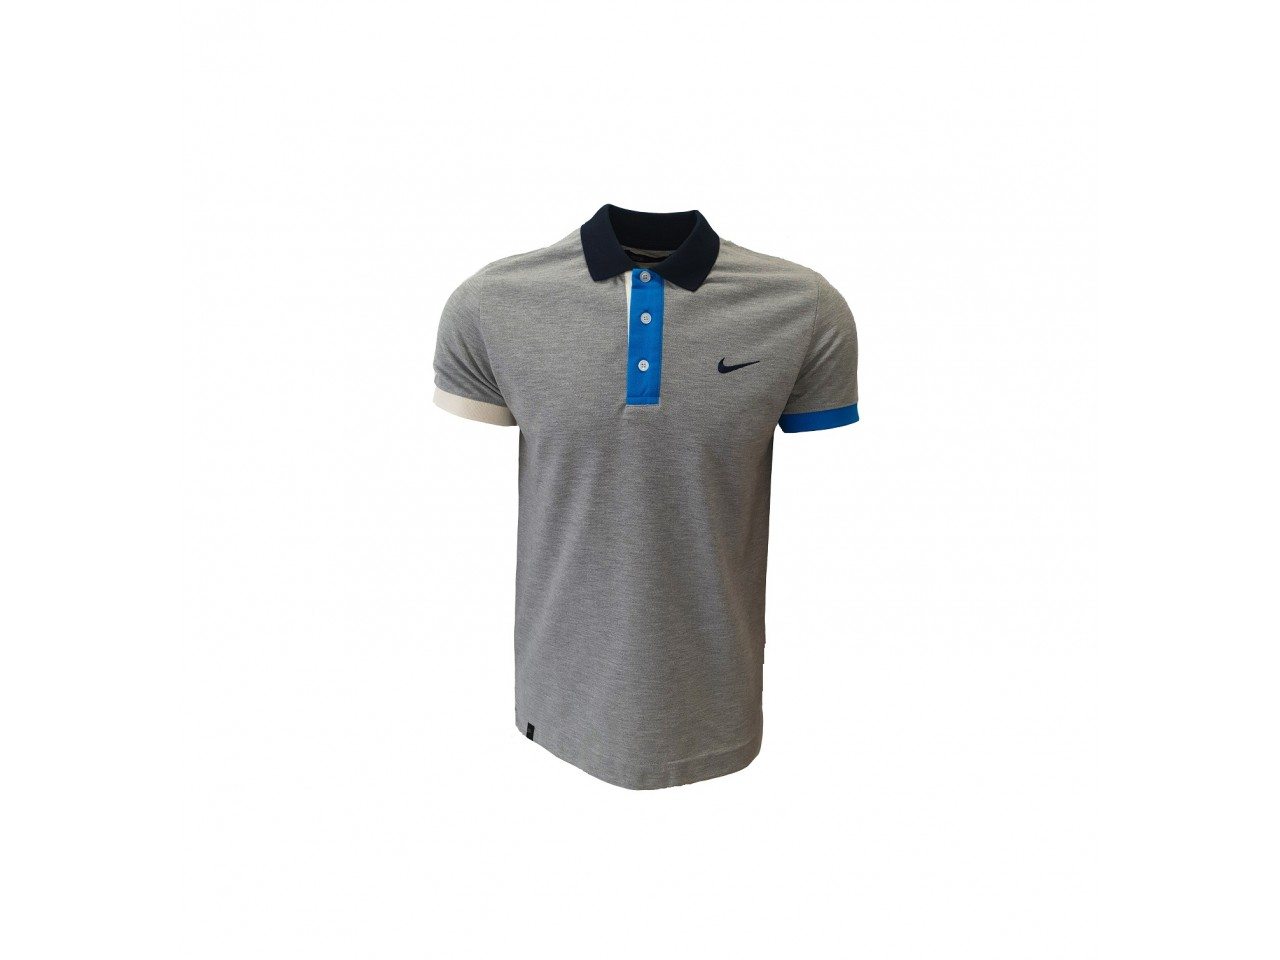 Nike Polo T-Shirt Light Grey Light Blue Dark Blue